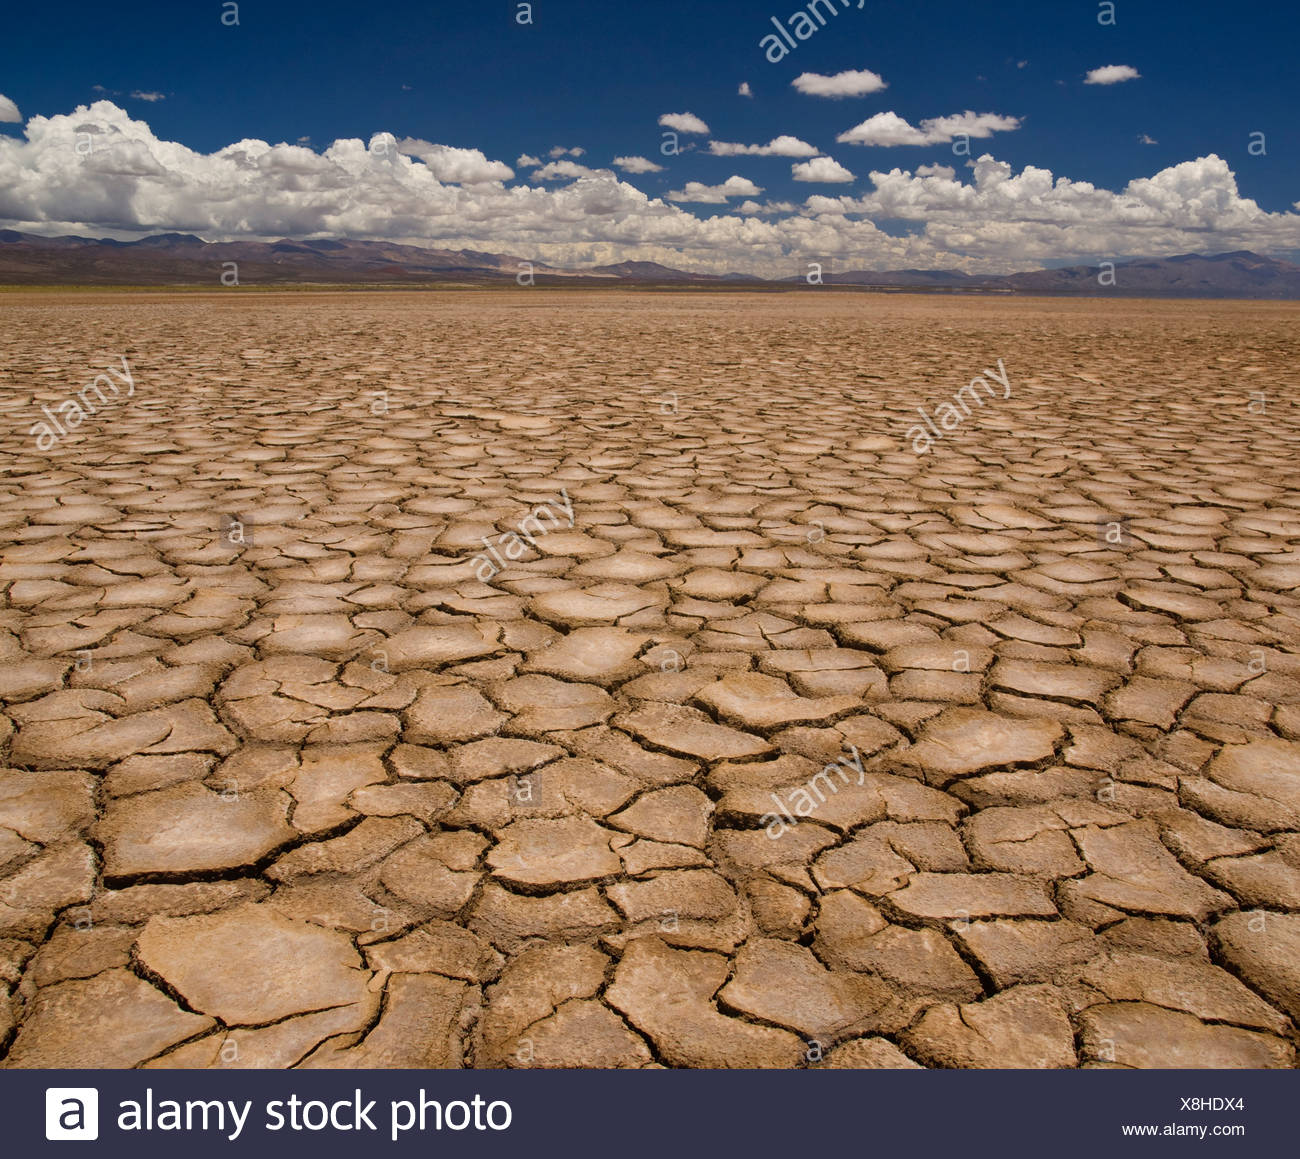 Large field of baked earth after a long drought. Stock Photo